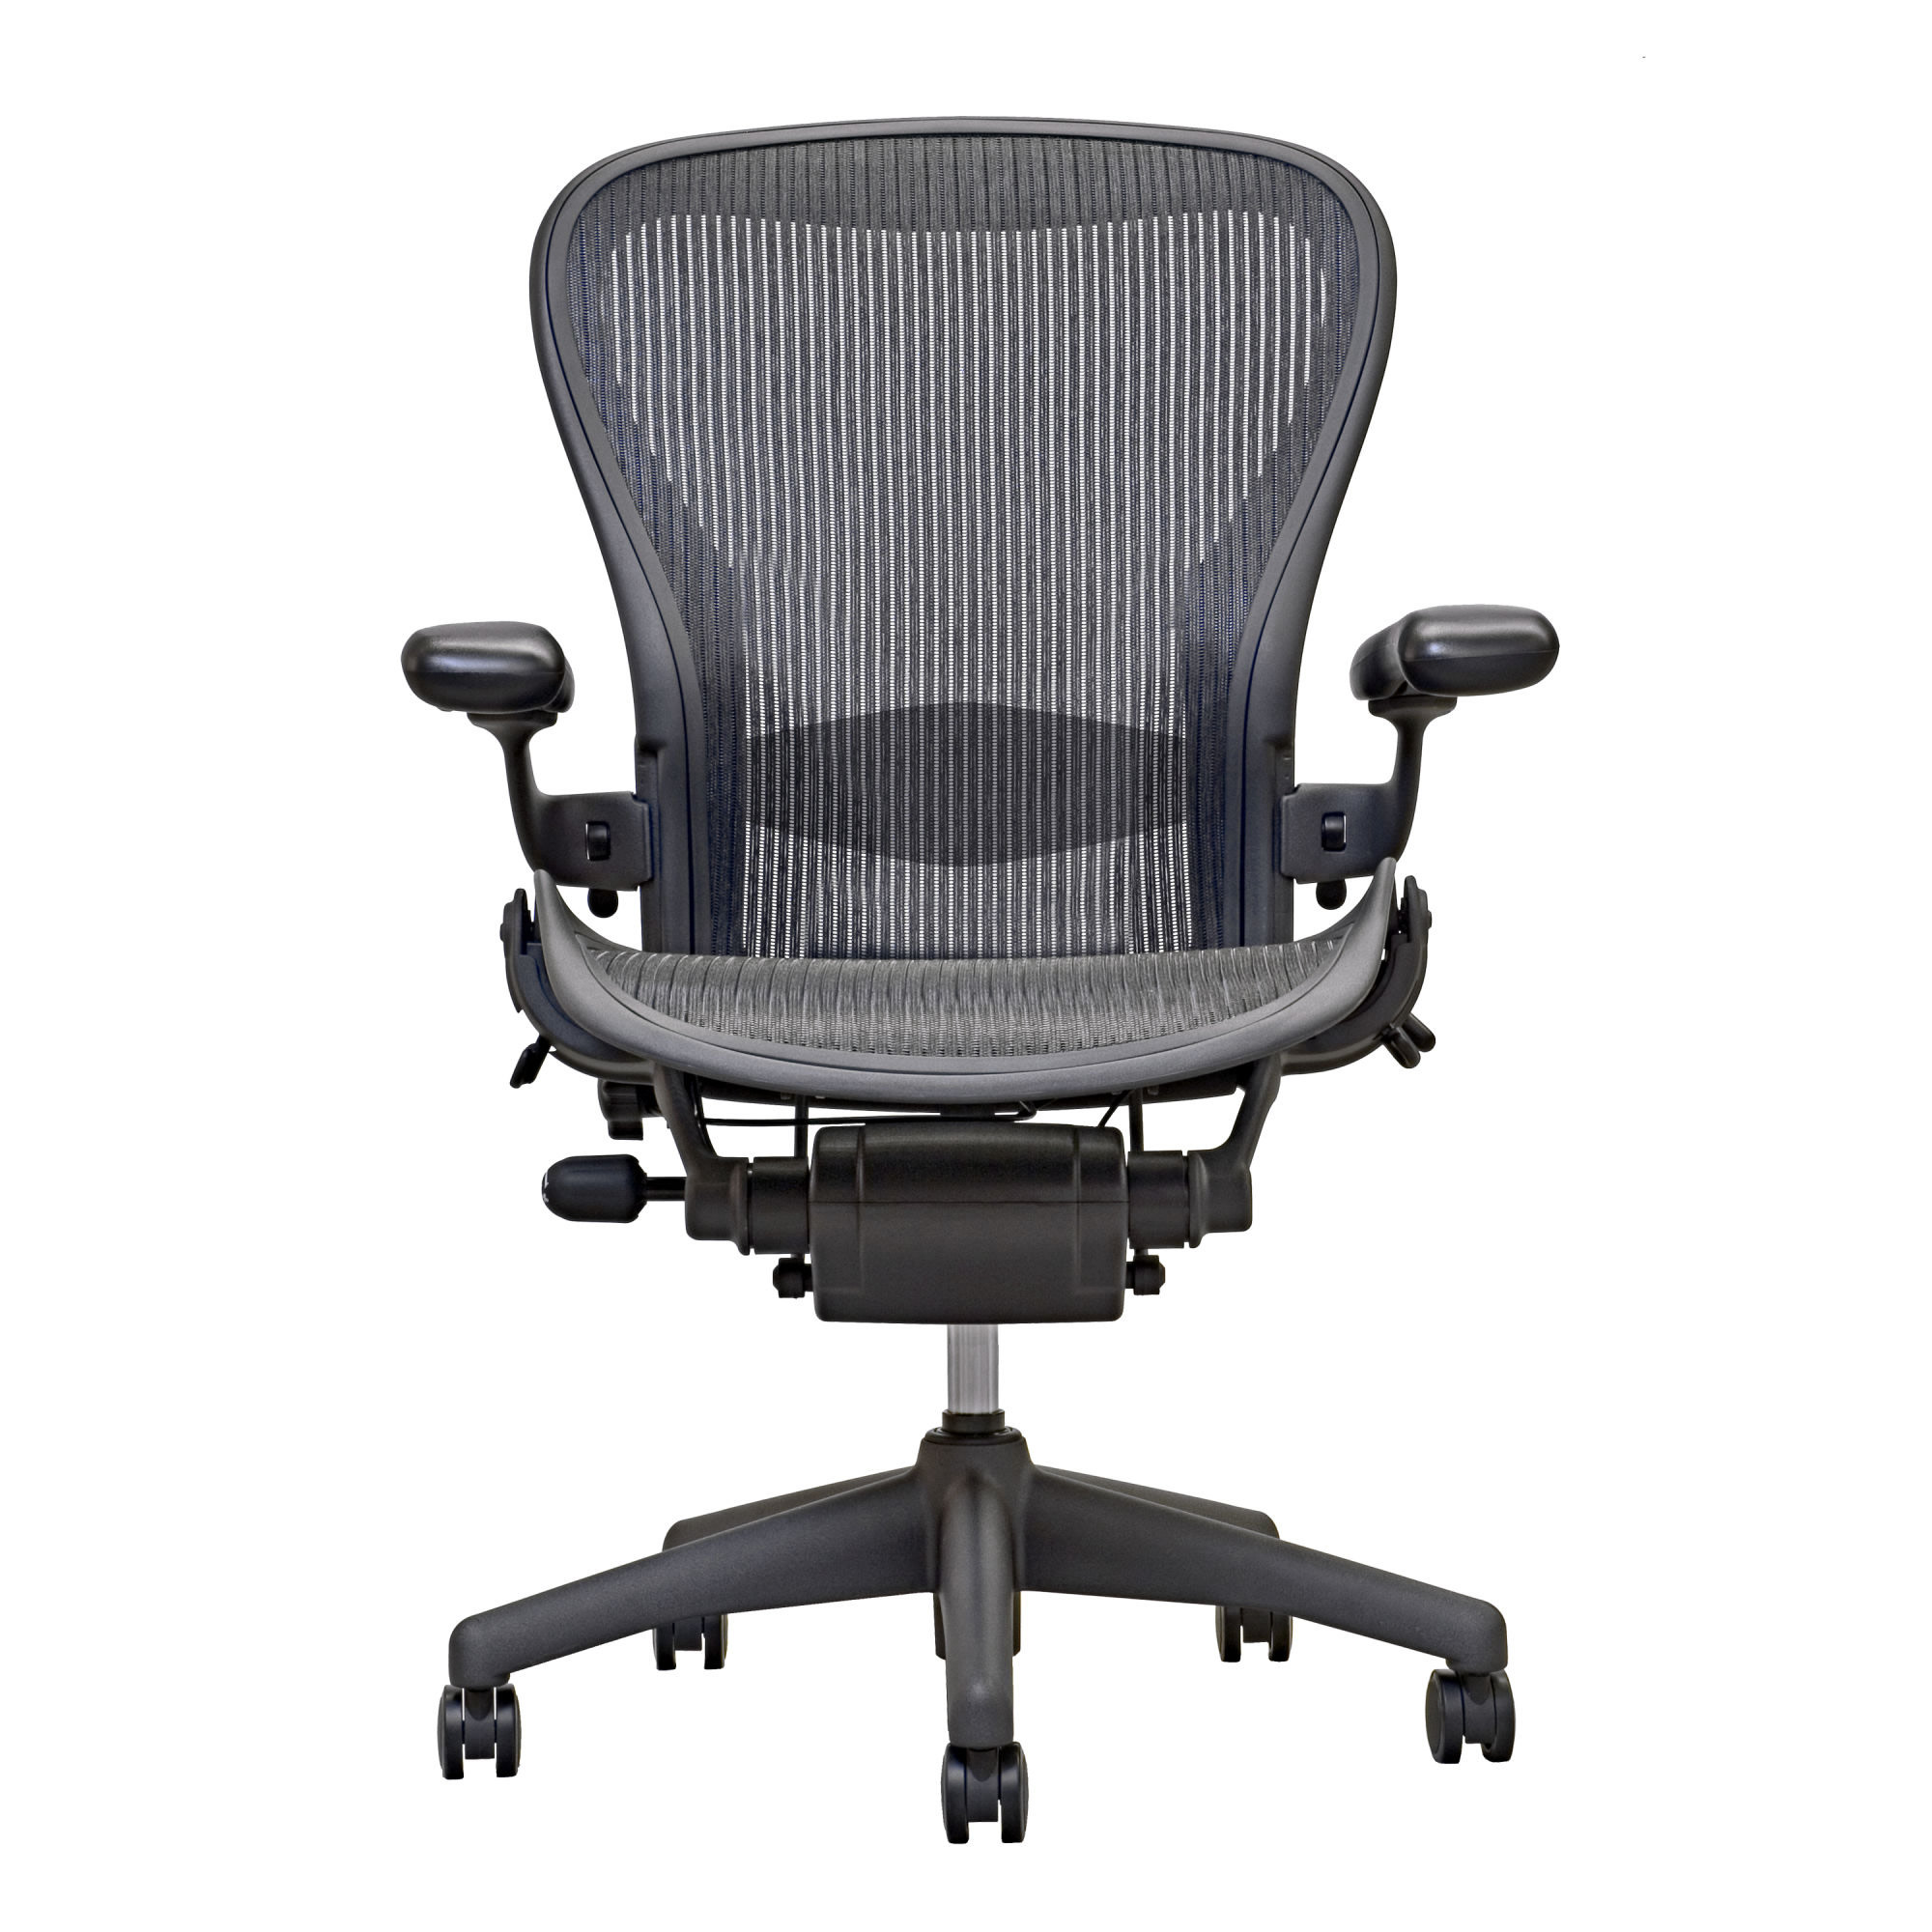 Aero Chair Aeron Chair By Herman Miller Highly Adjustable Carbon